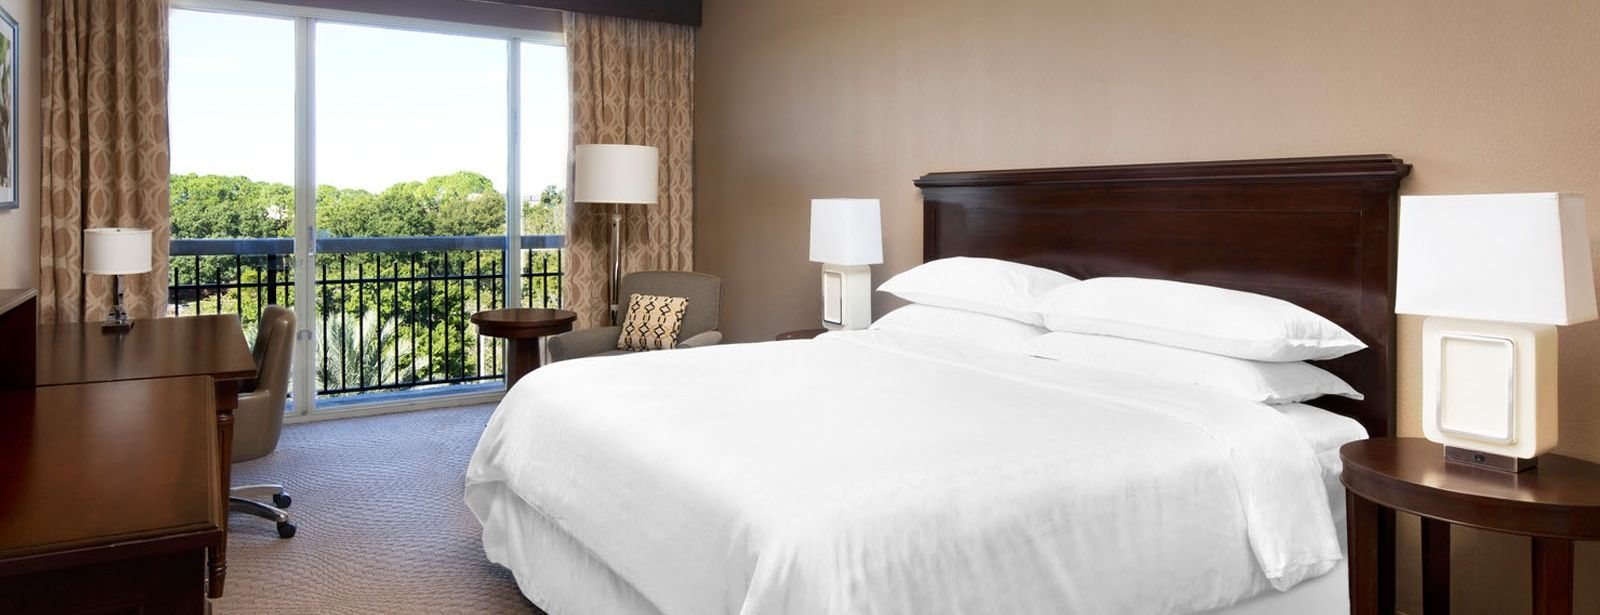 Traditional Guest Room | Sheraton Orlando North Hotel